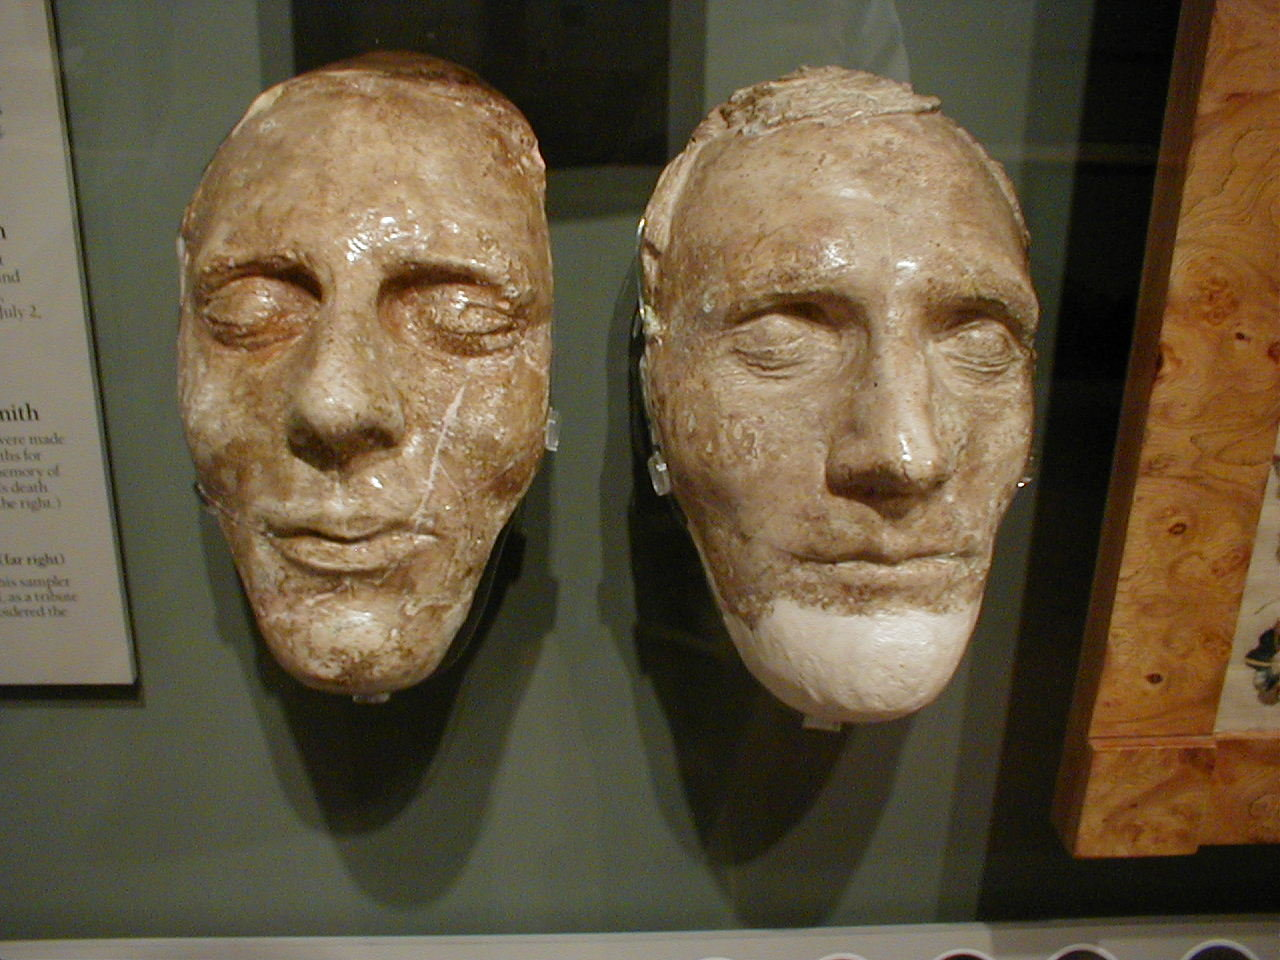 The death masks of Joseph and Hyrum Smith are on display.